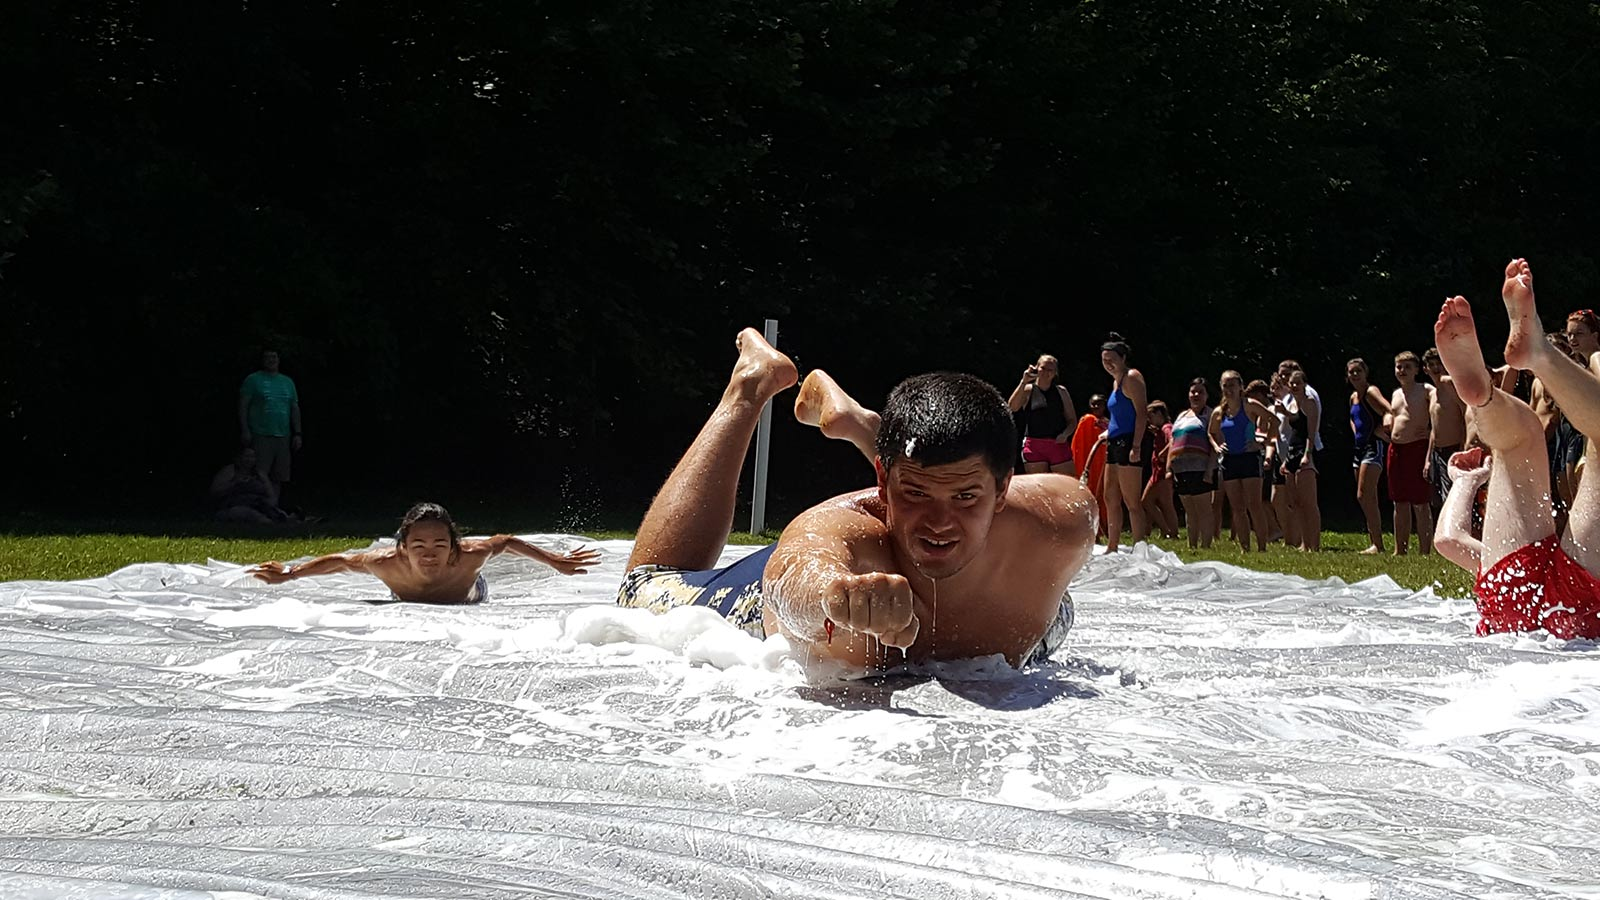 Teenager or camp counselor and young Asian boy sliding on their stomach on a homemade slip & slide - NaCoMe Camp & Conference Center